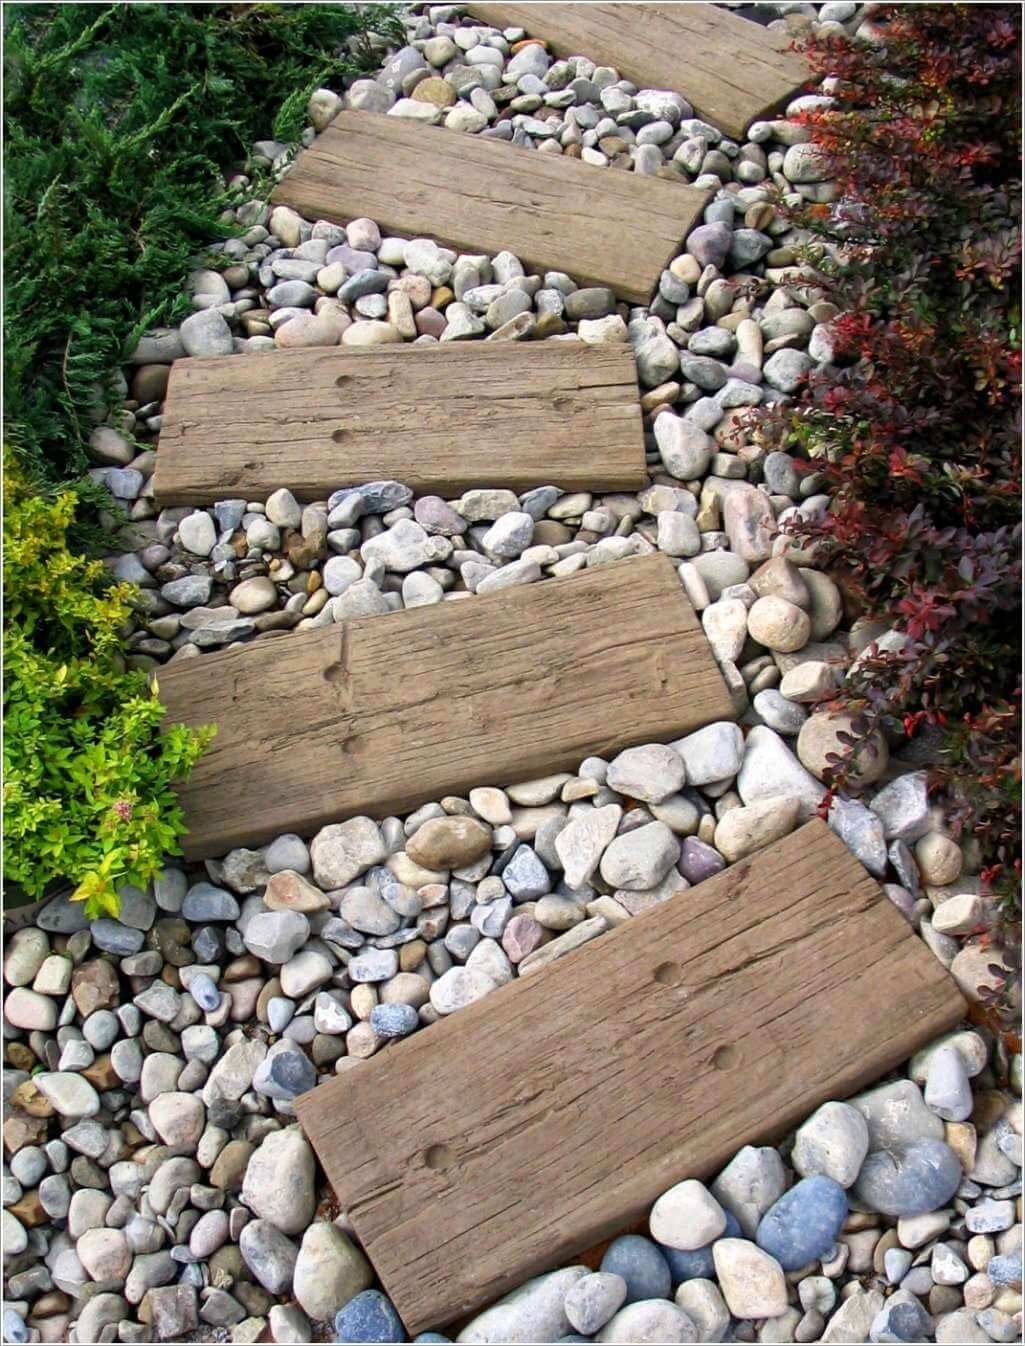 30 Best Decorative Stepping Stones (Ideas and Designs)   Yard ...